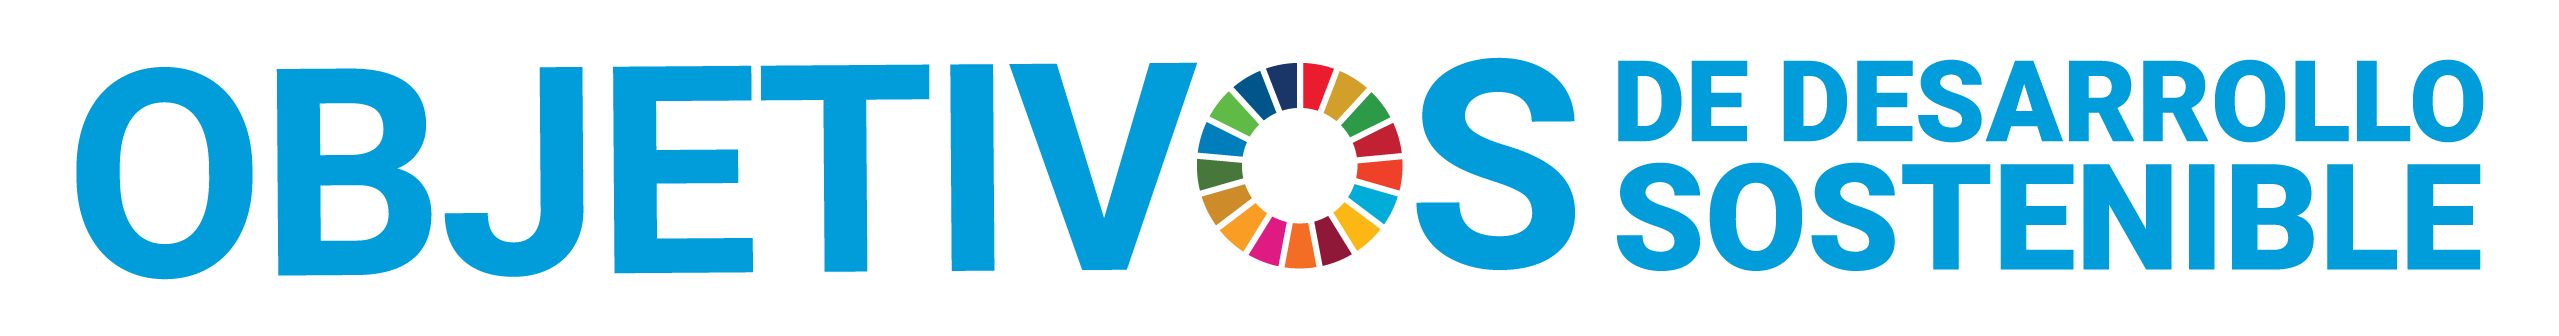 S SDG logo without UN emblem horizontal Transparent WEB